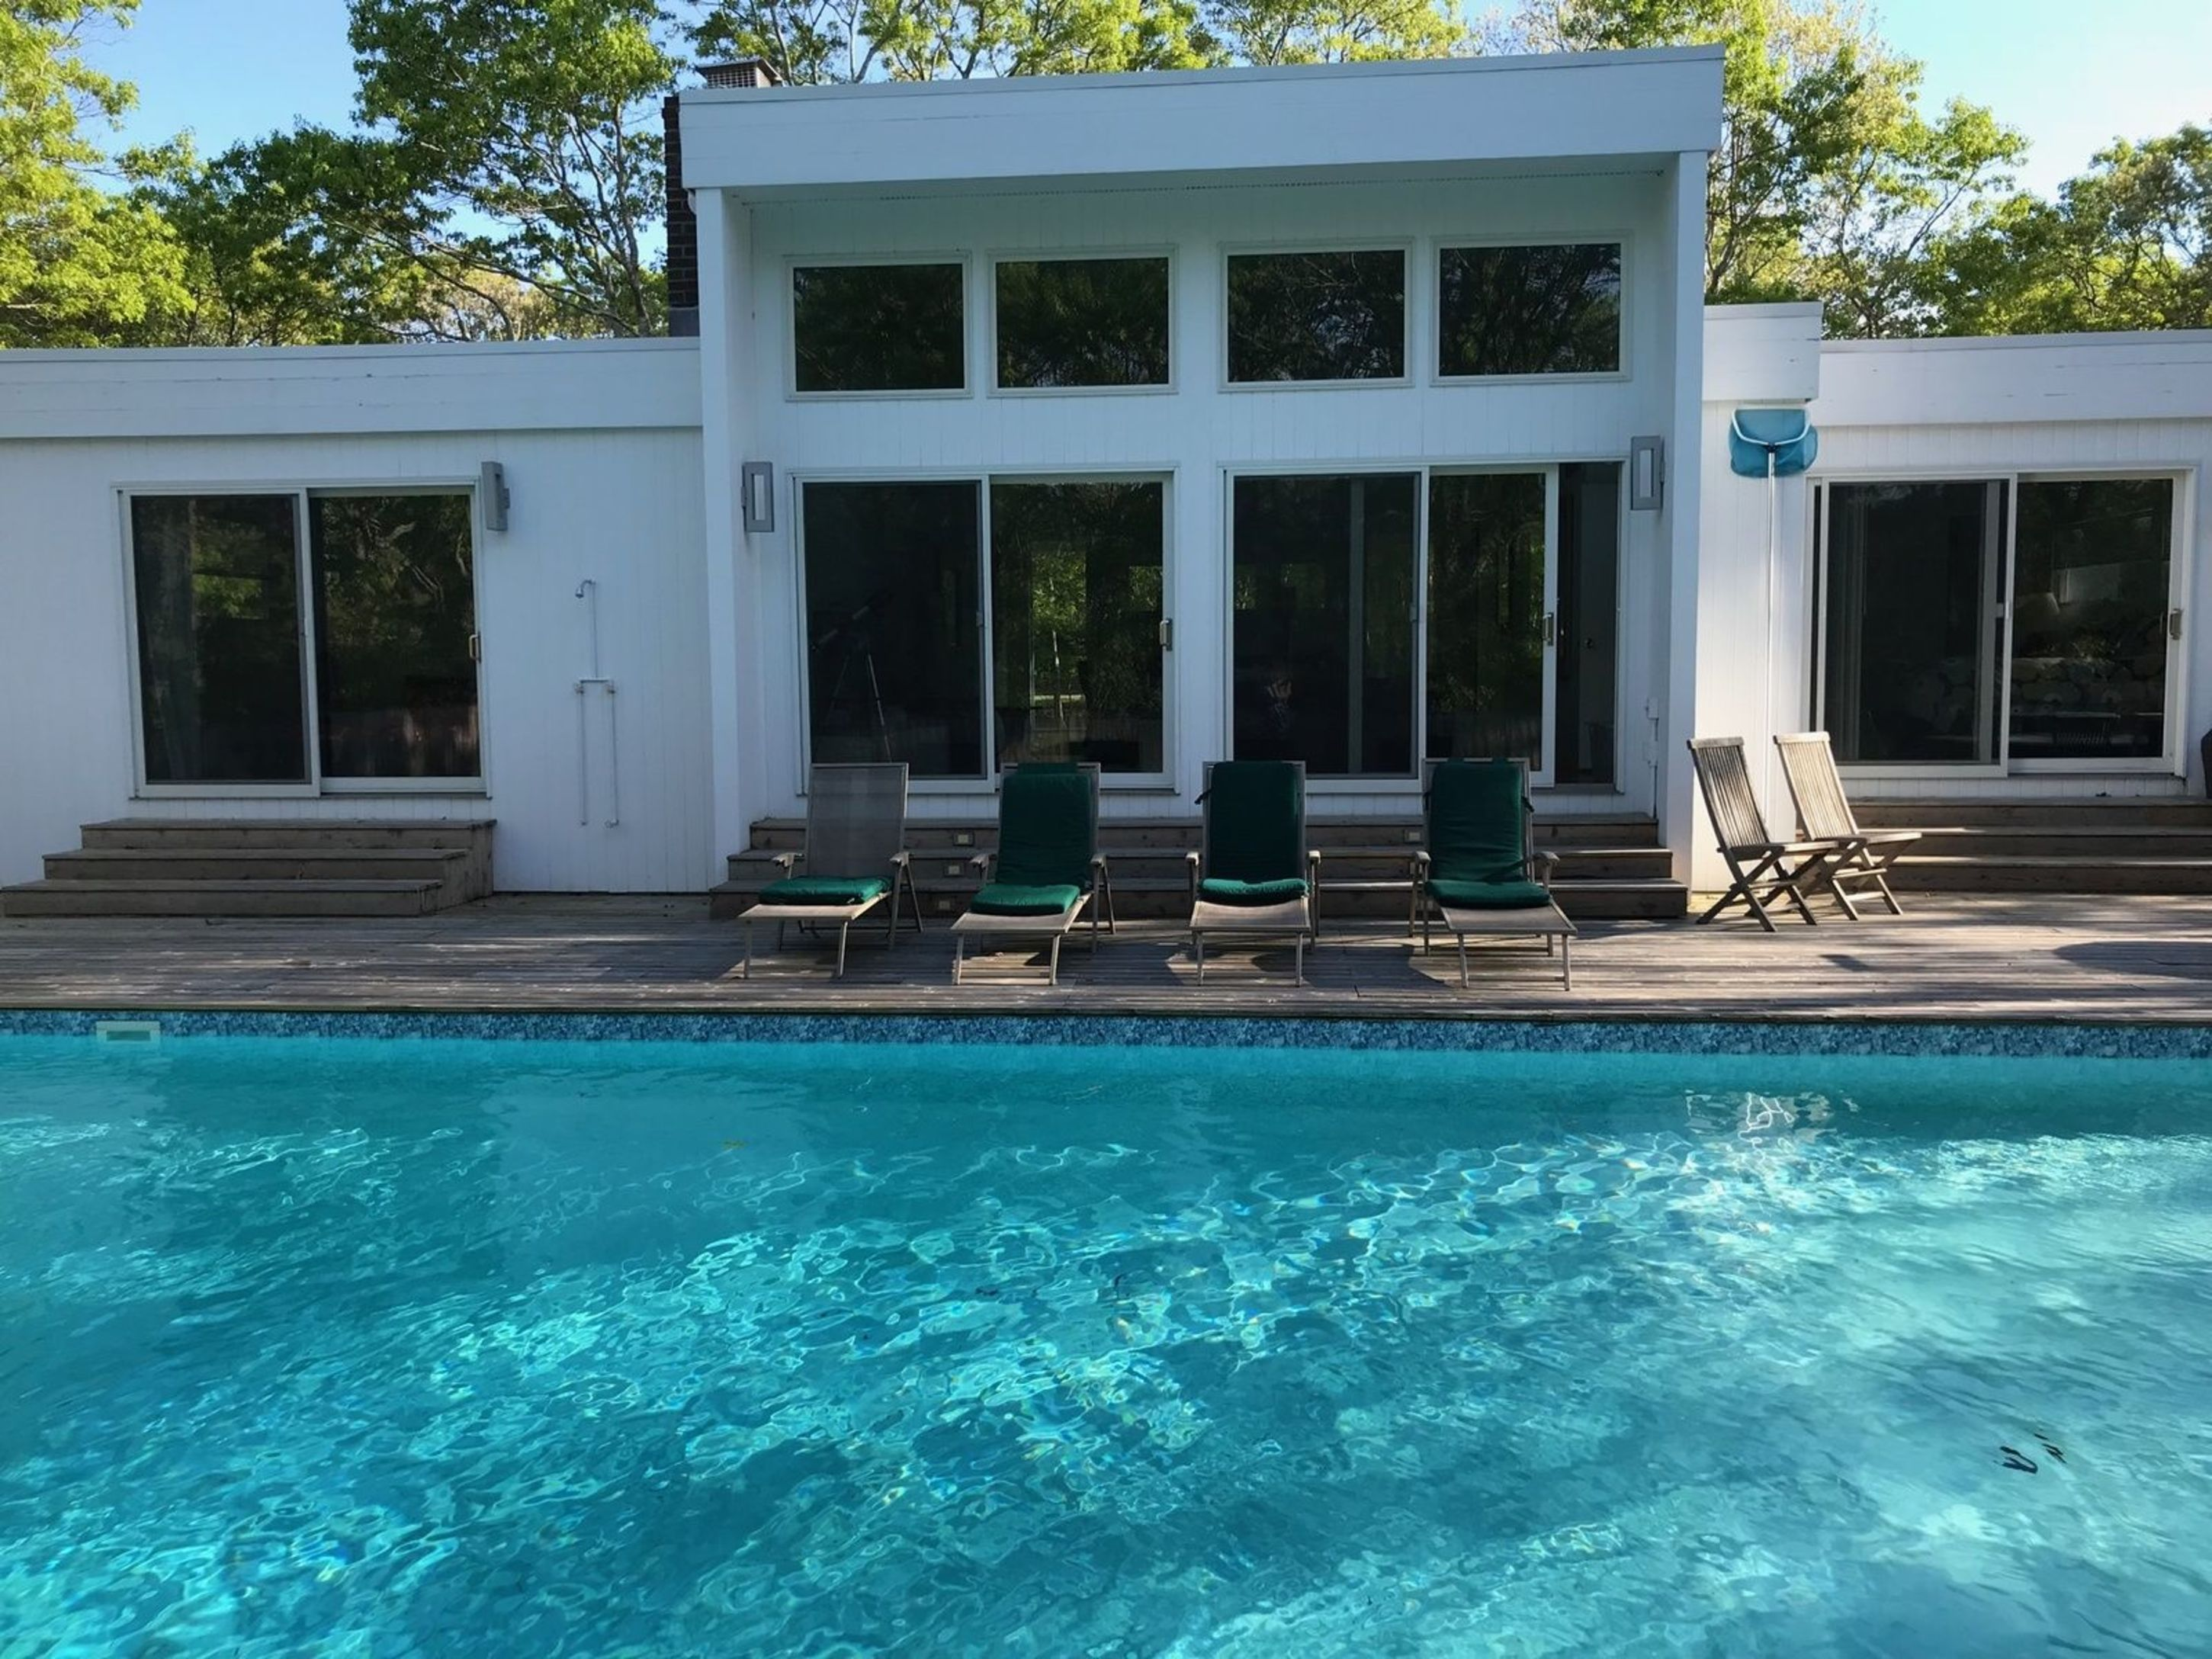 23 Rivers Rd - East Hampton NW, New York